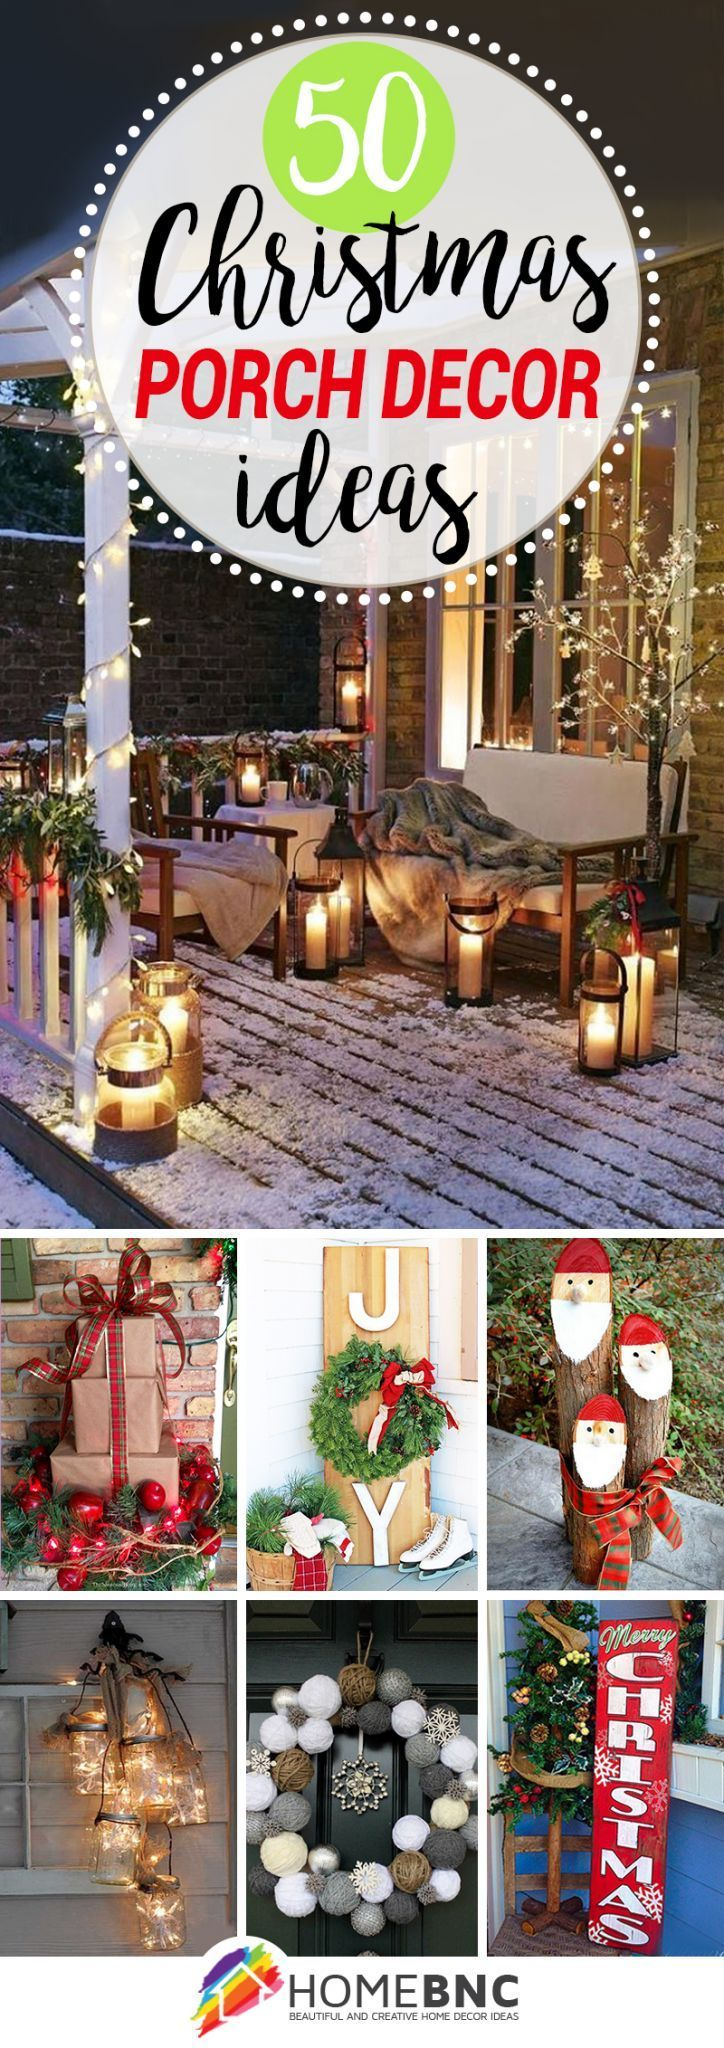 BEAUTIFUL CHRISTMAS LANTERNSthis is such a great